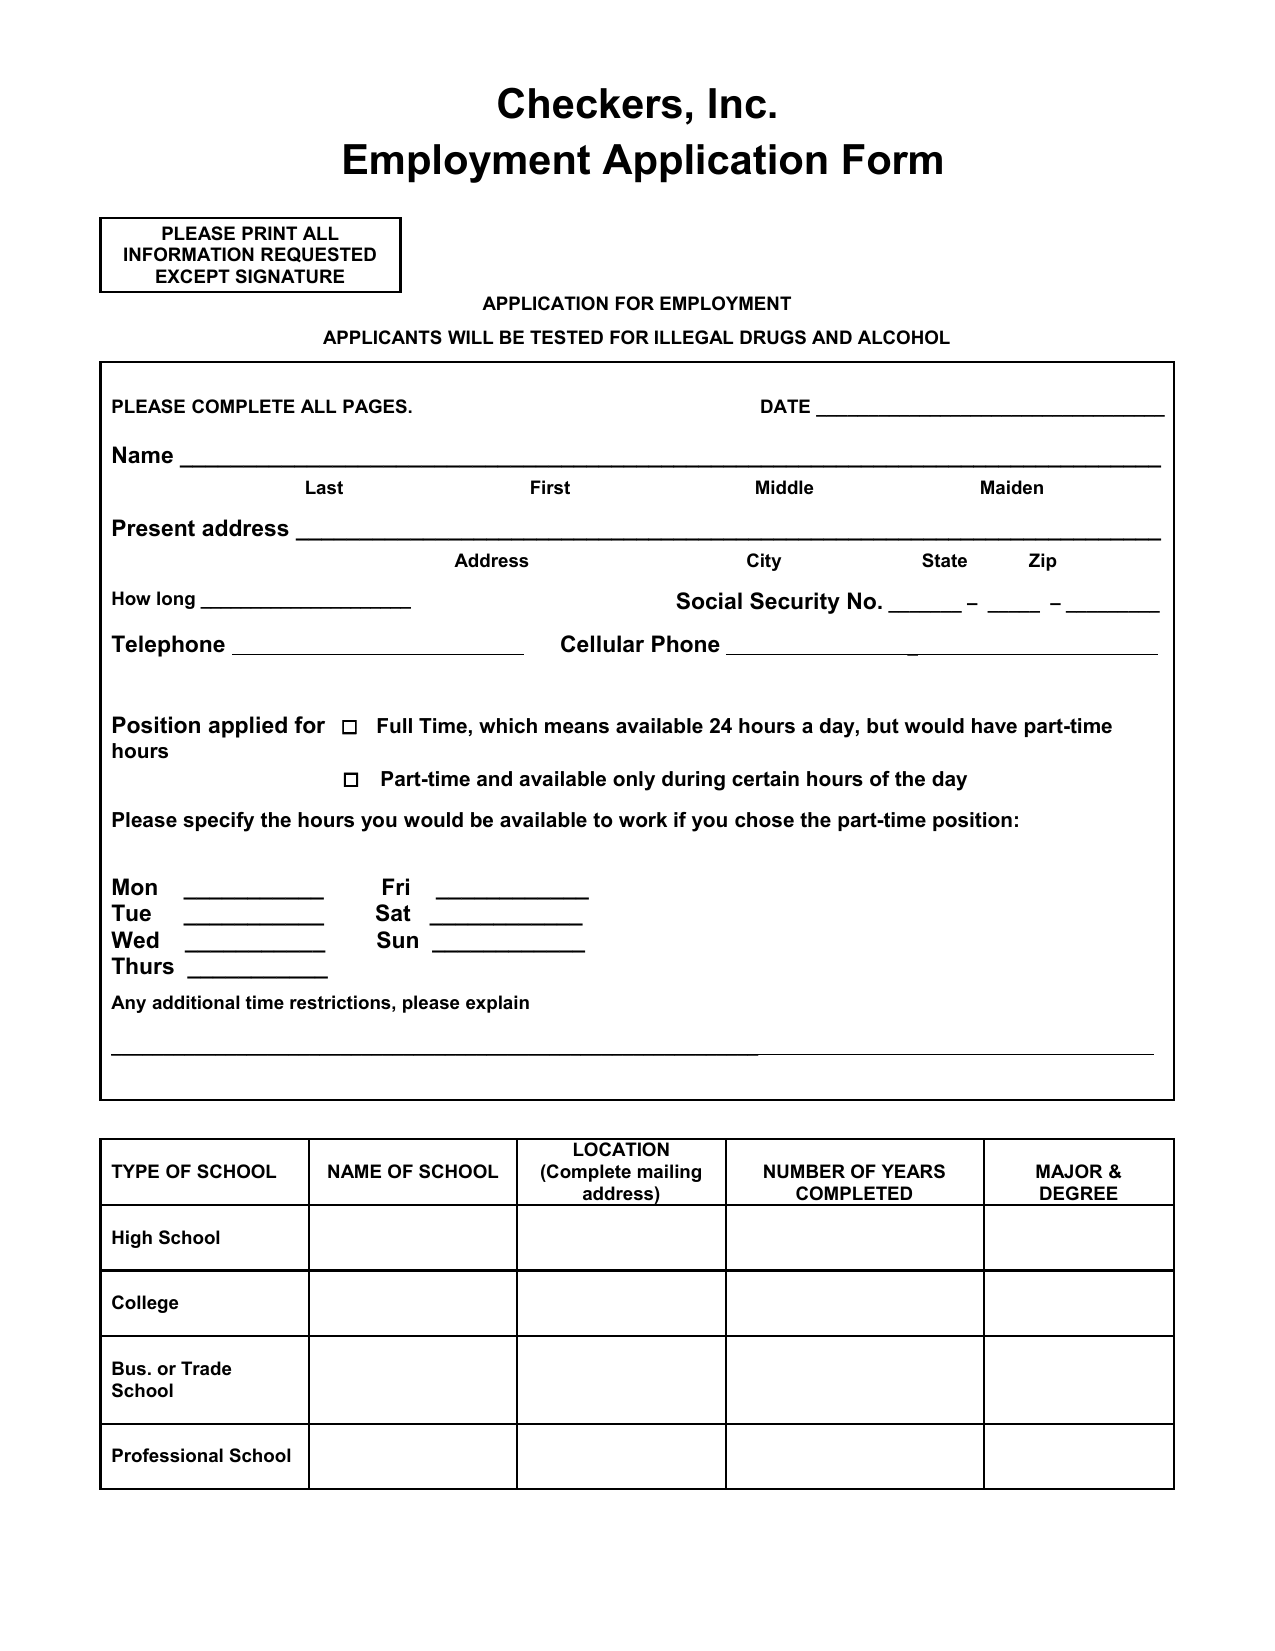 download checkers job application form careers pdf